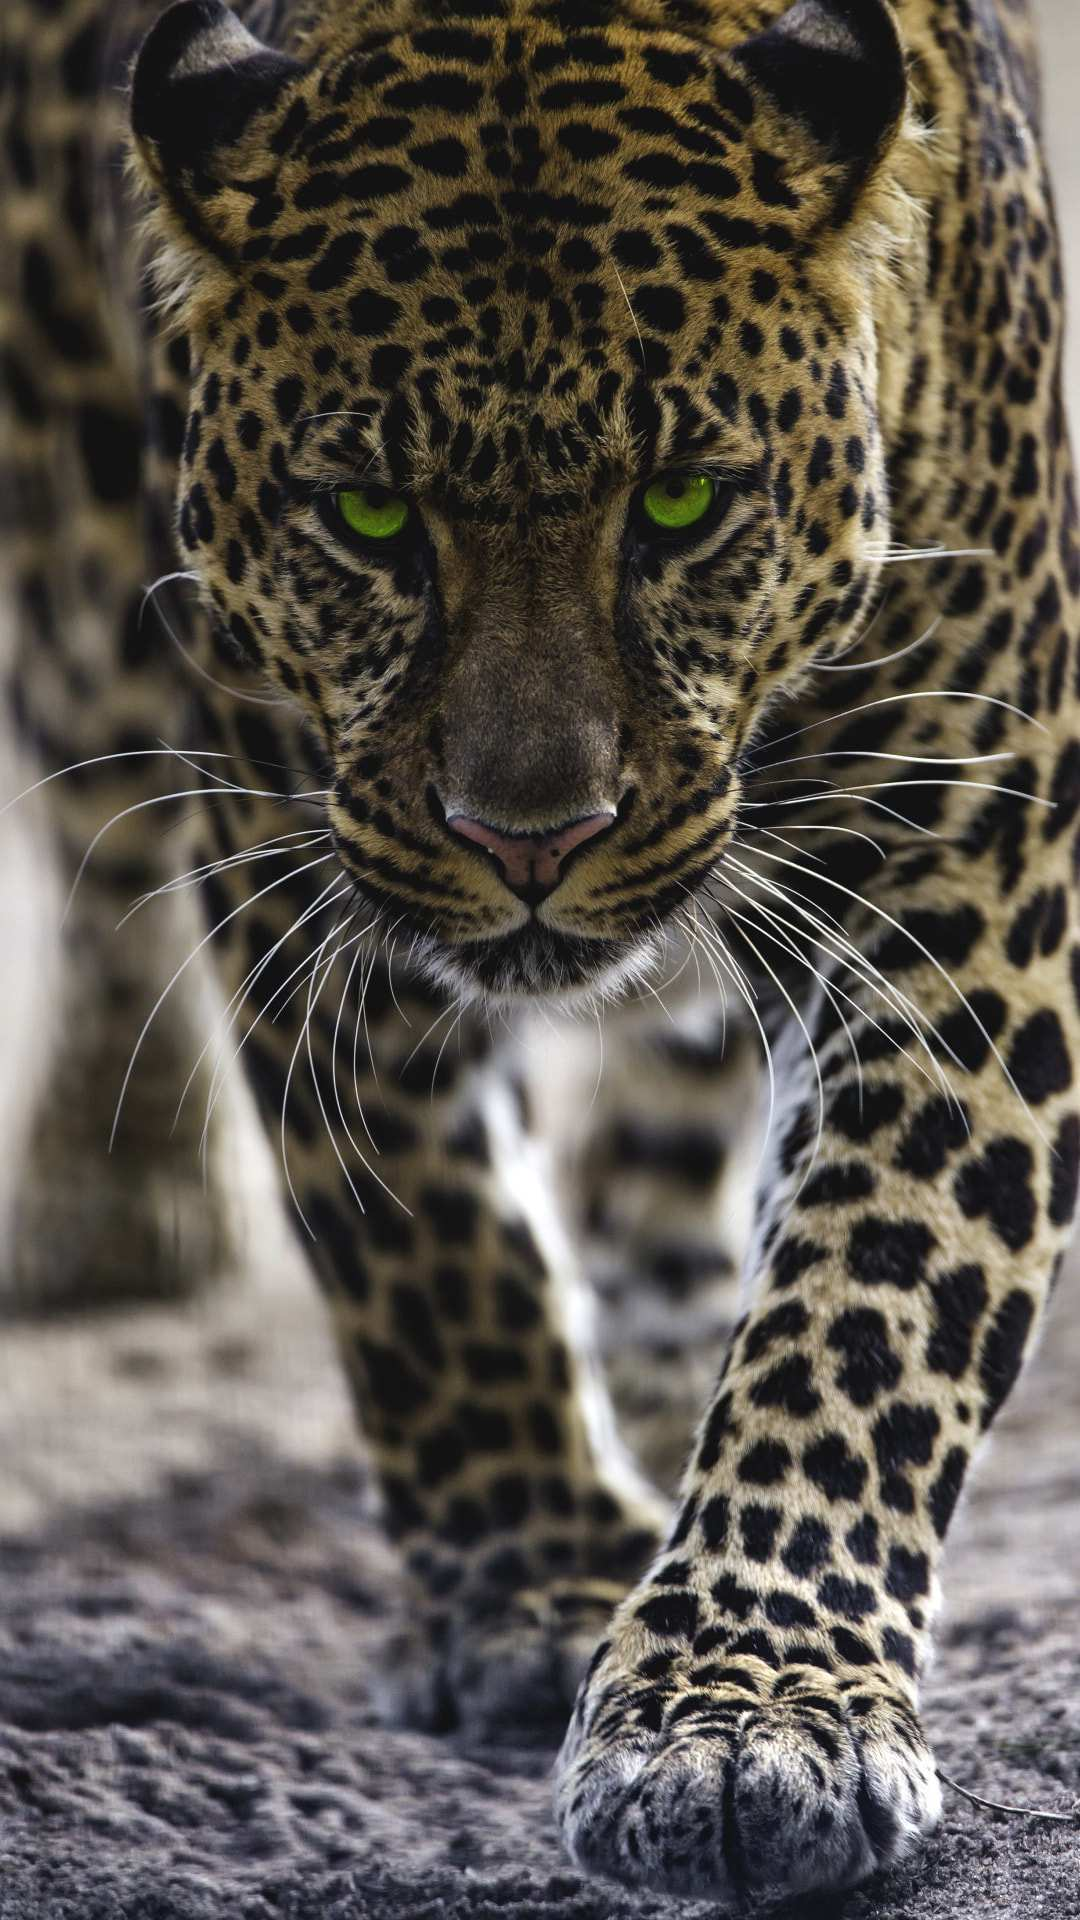 Cute Phone Wallpaper Download Jaguar Iphone Wallpaper Iphone Wallpapers